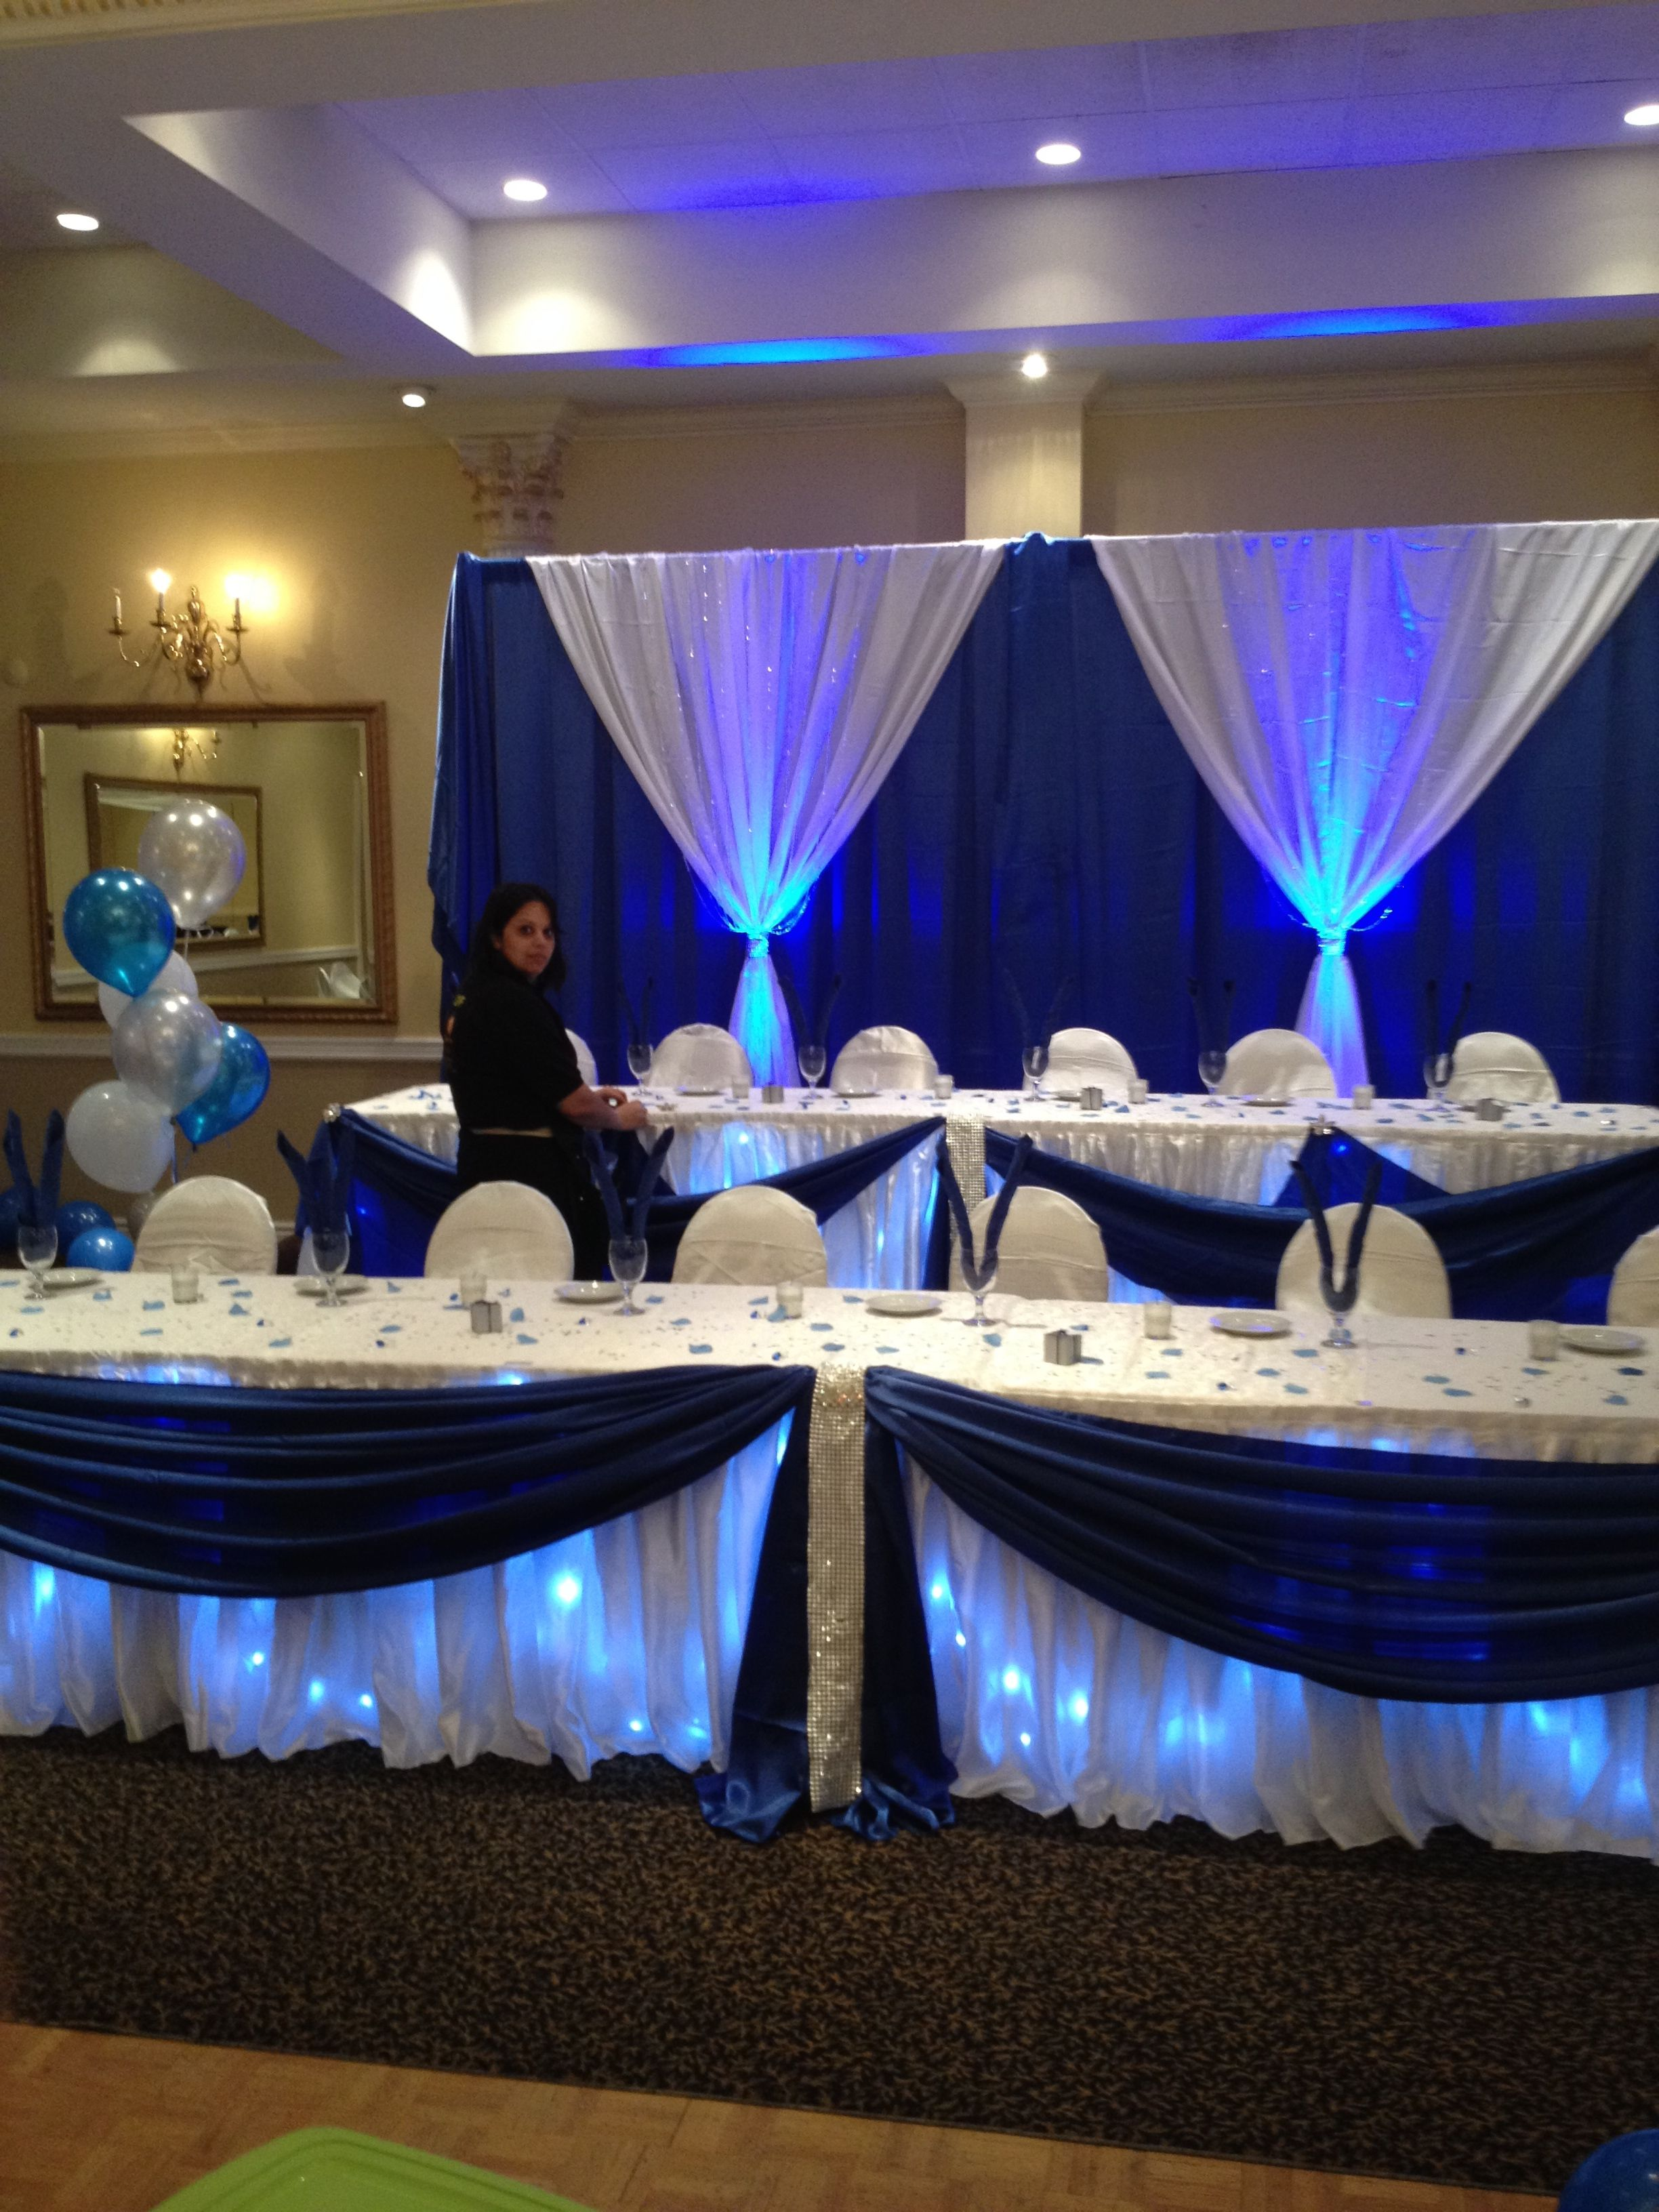 Navy Blue and White is a 2014 hot colour this was a Sweet 16